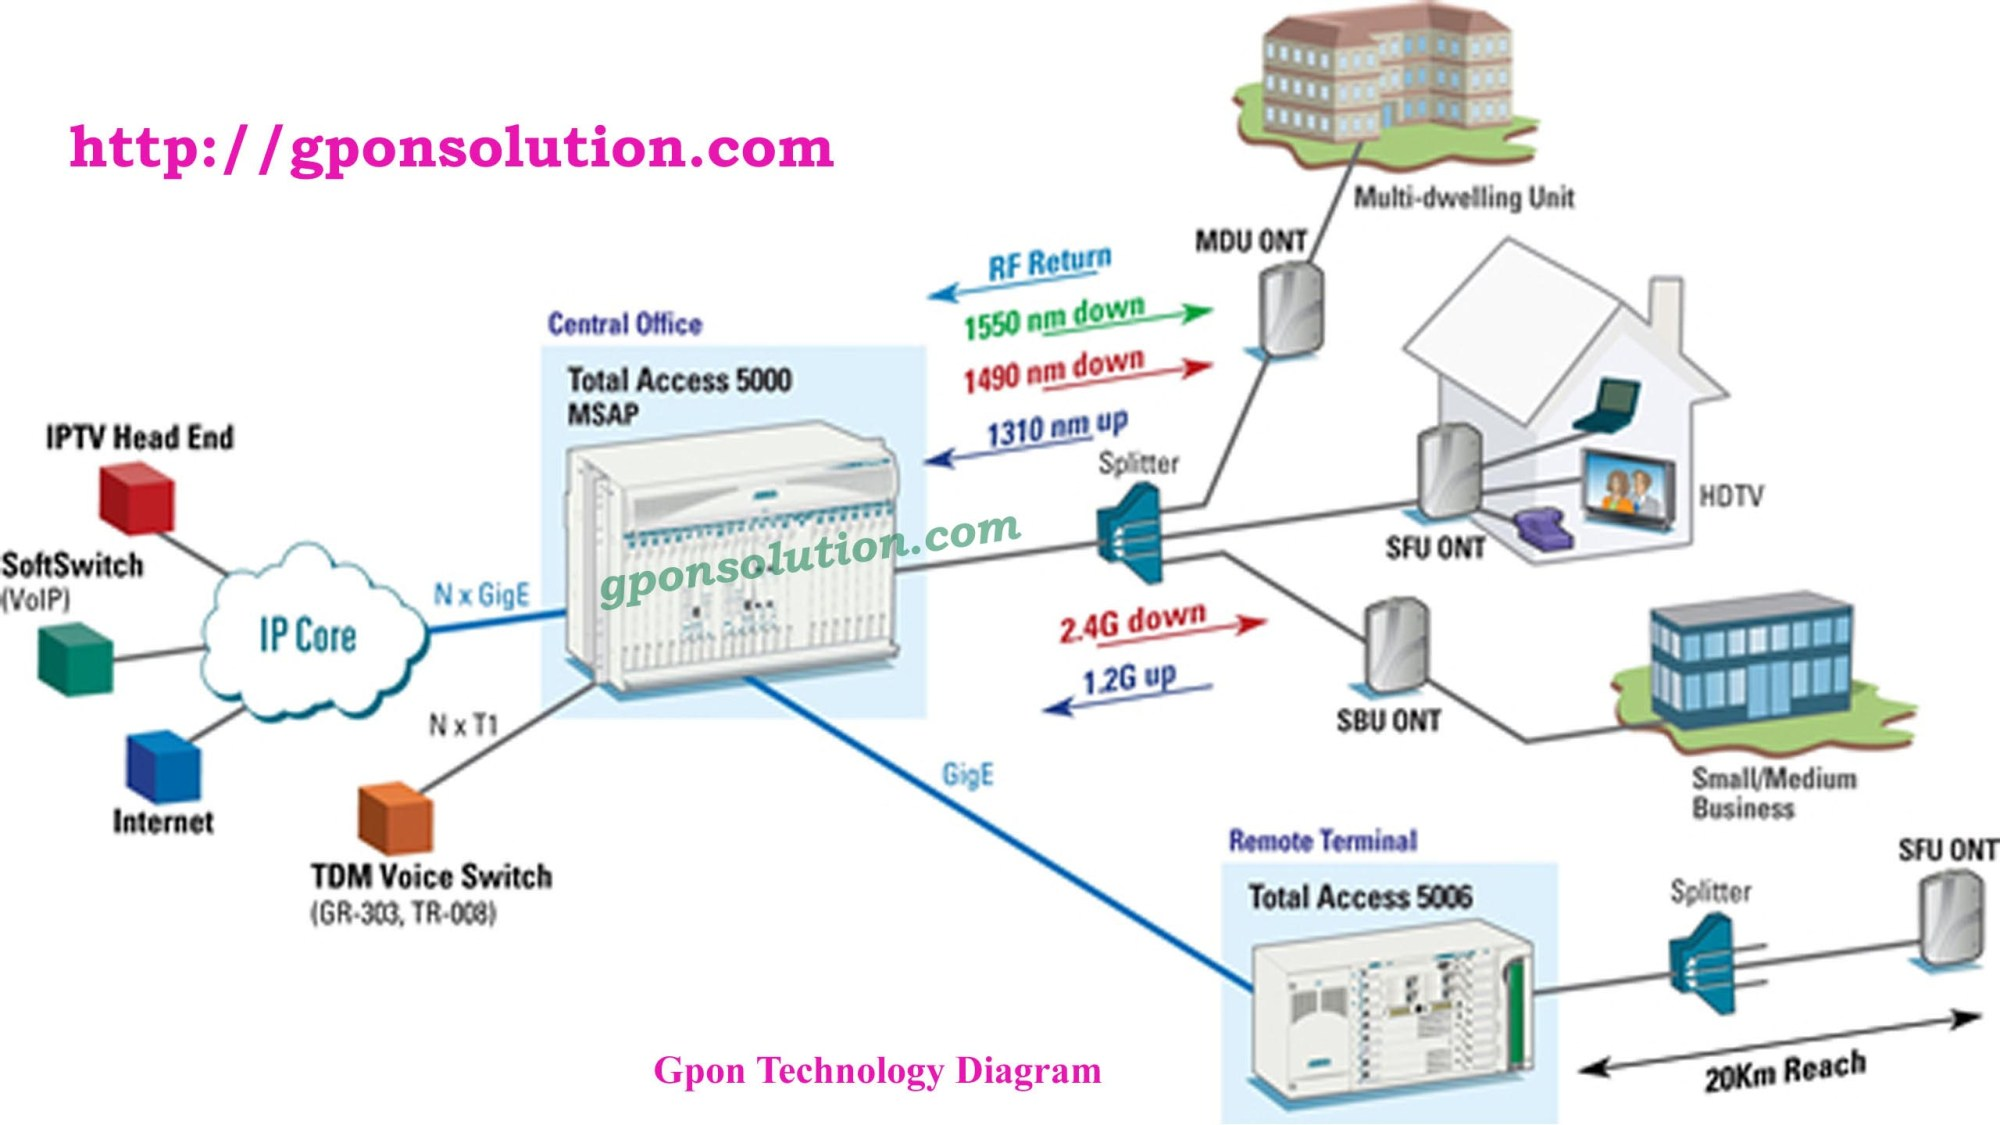 hight resolution of gpon network architecture diagram gpon solution fibre to the home diagram fiber nid to the home